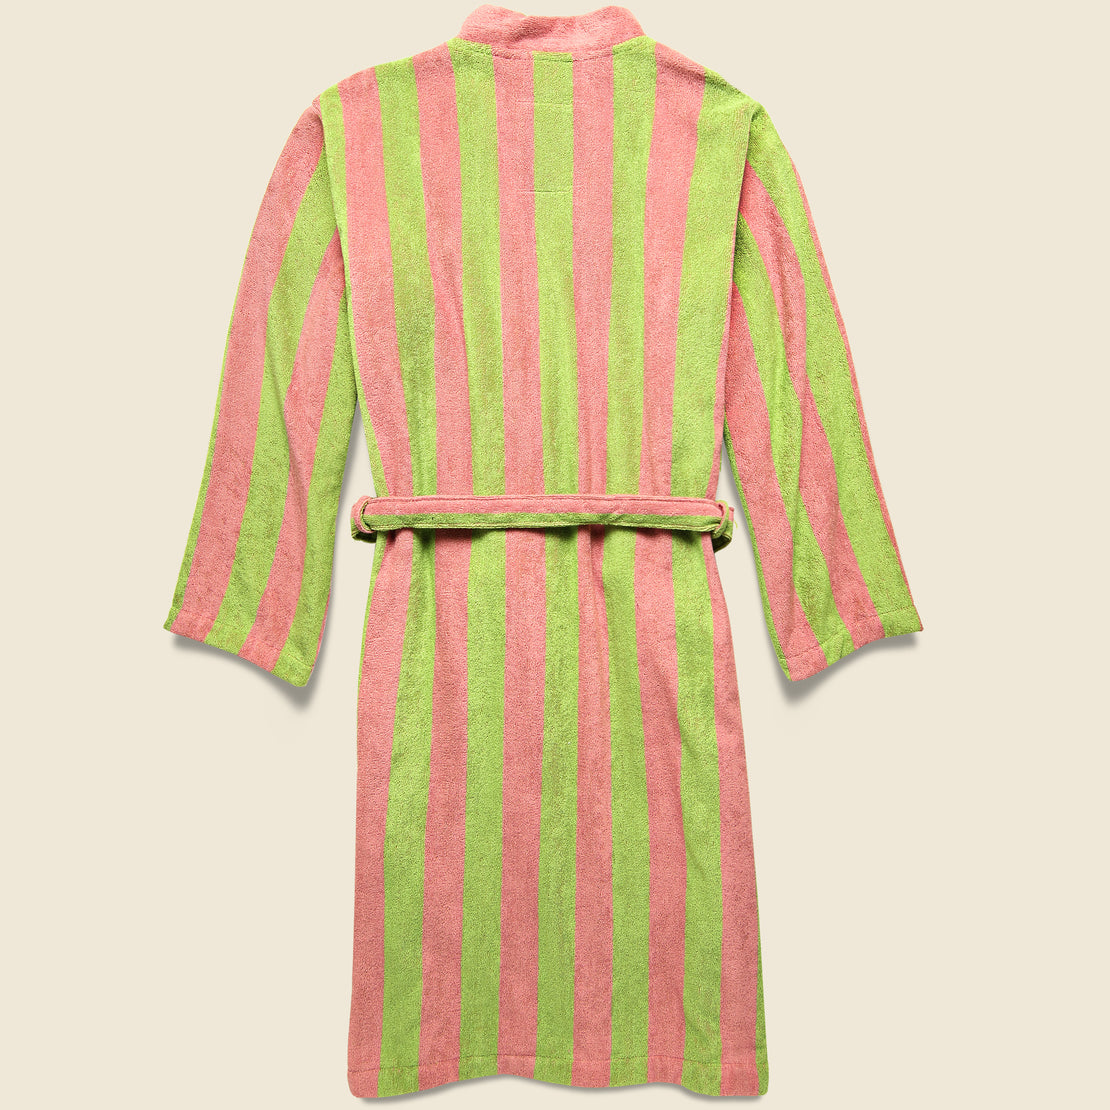 The Berry Robe - Pink/Green Stripe